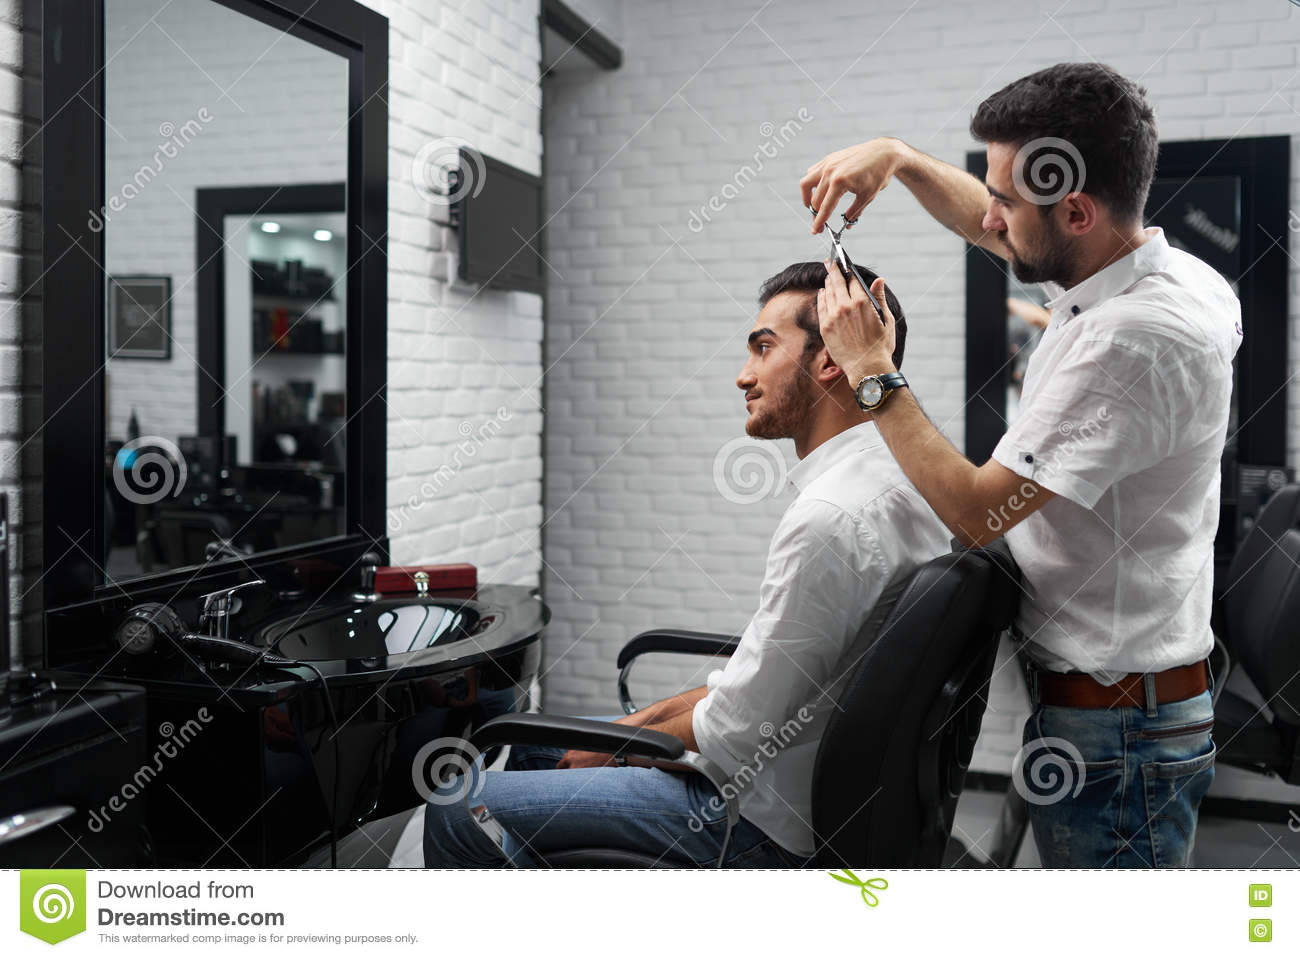 royalty free stock photo - Professional Hairstylist